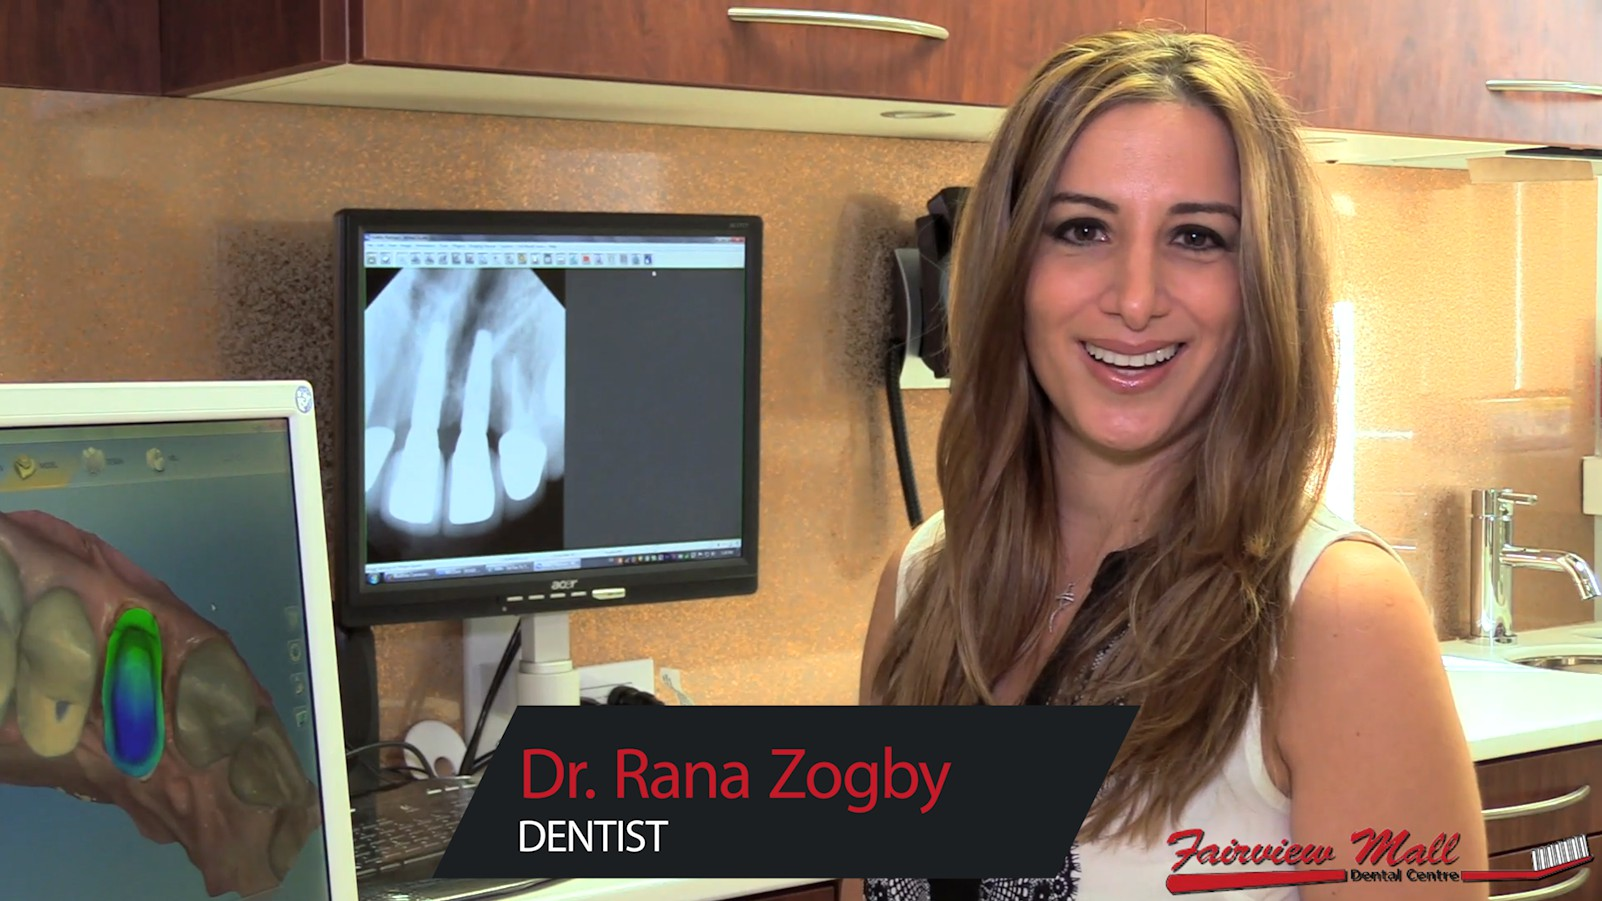 Fairview Mall Dental Centre - Dentists - 4164911100